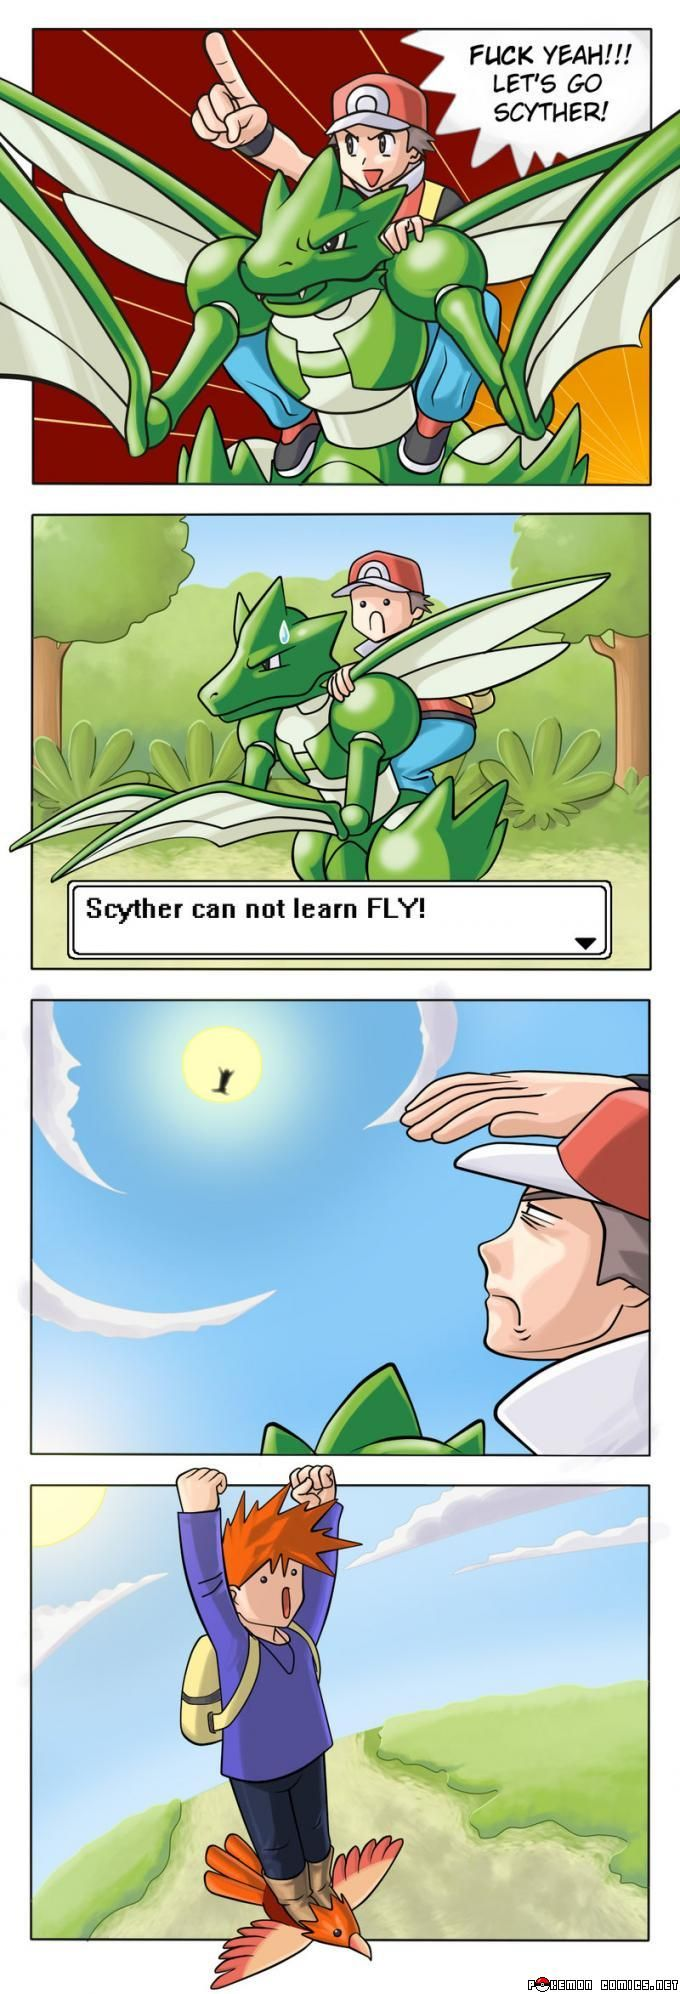 Pokémon logic. I love Gary though. This reminds me of the Pokémon in Real Life vids by SMOSH!